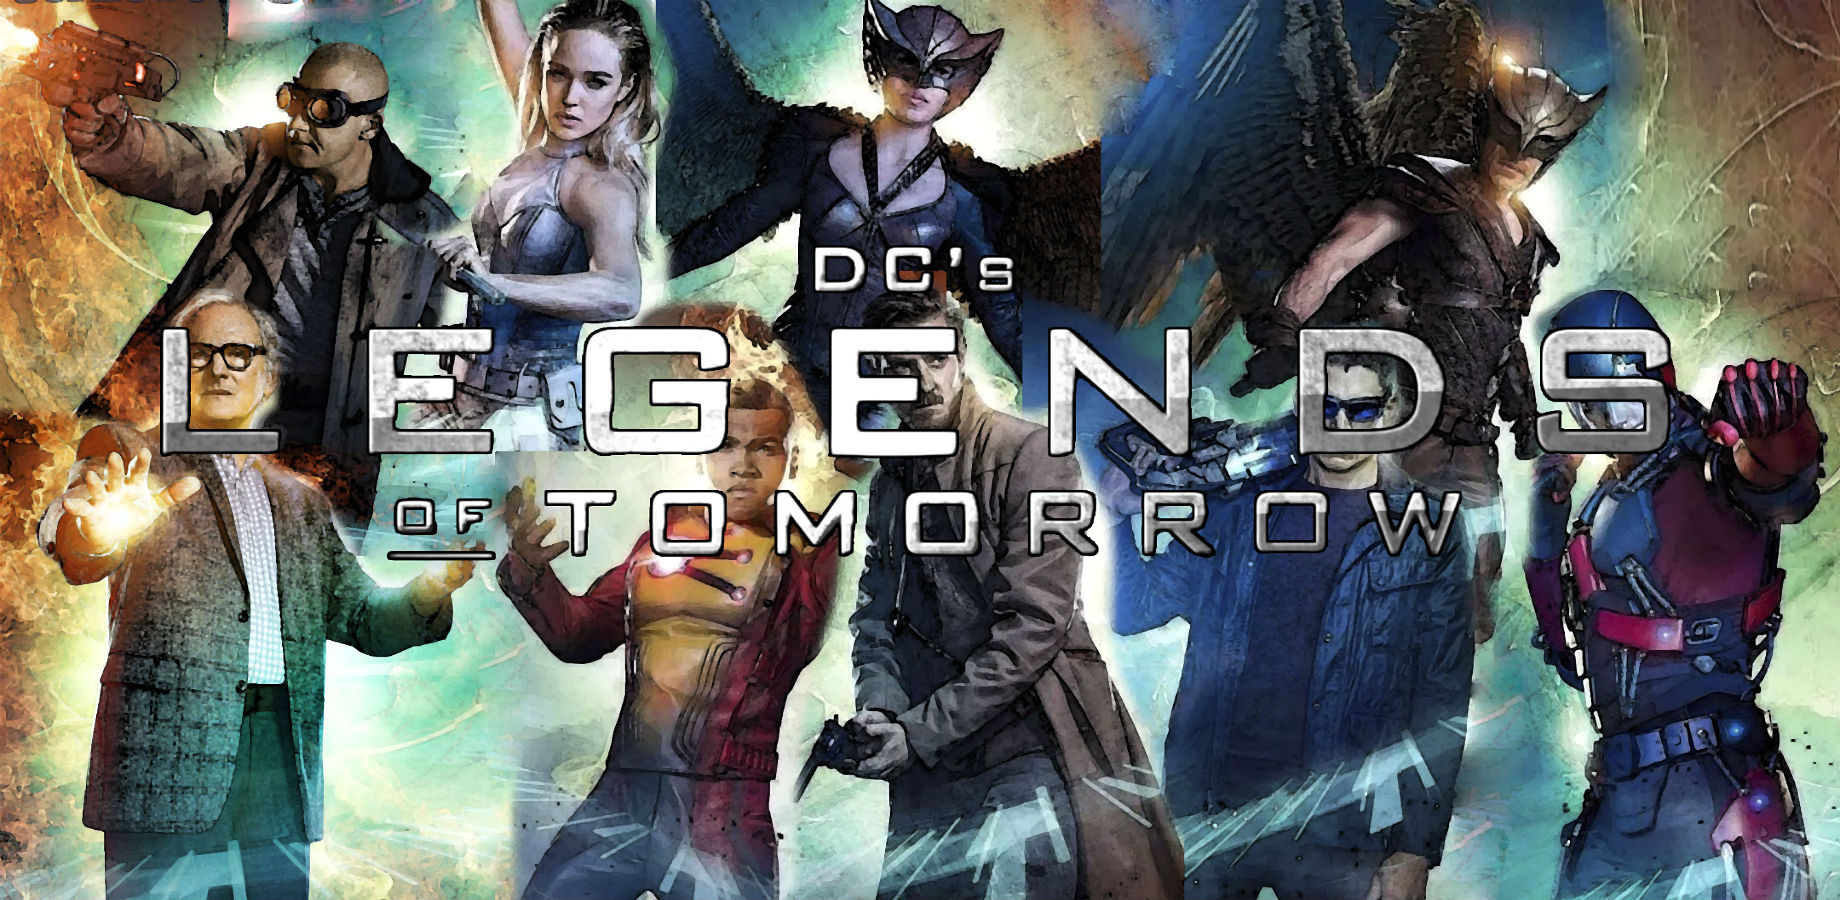 Dc S Legends Of Tomorrow Wallpaper And Background Image 1840x900